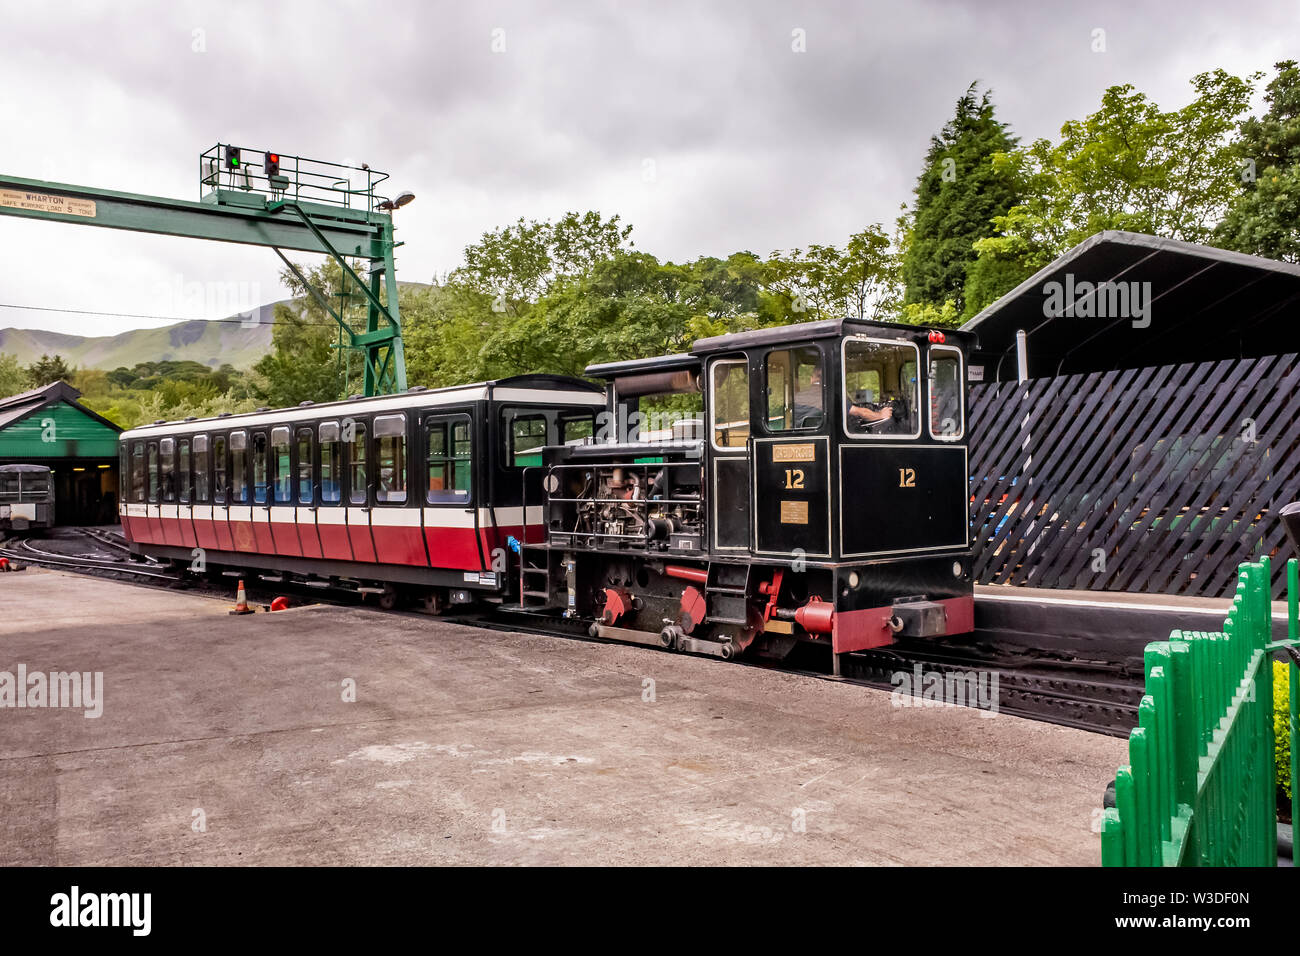 A diesel train in Llanberis train station used on the Mount Snowdon Railway used to carry passengers to the summit of Mount Snowdon - Stock Image